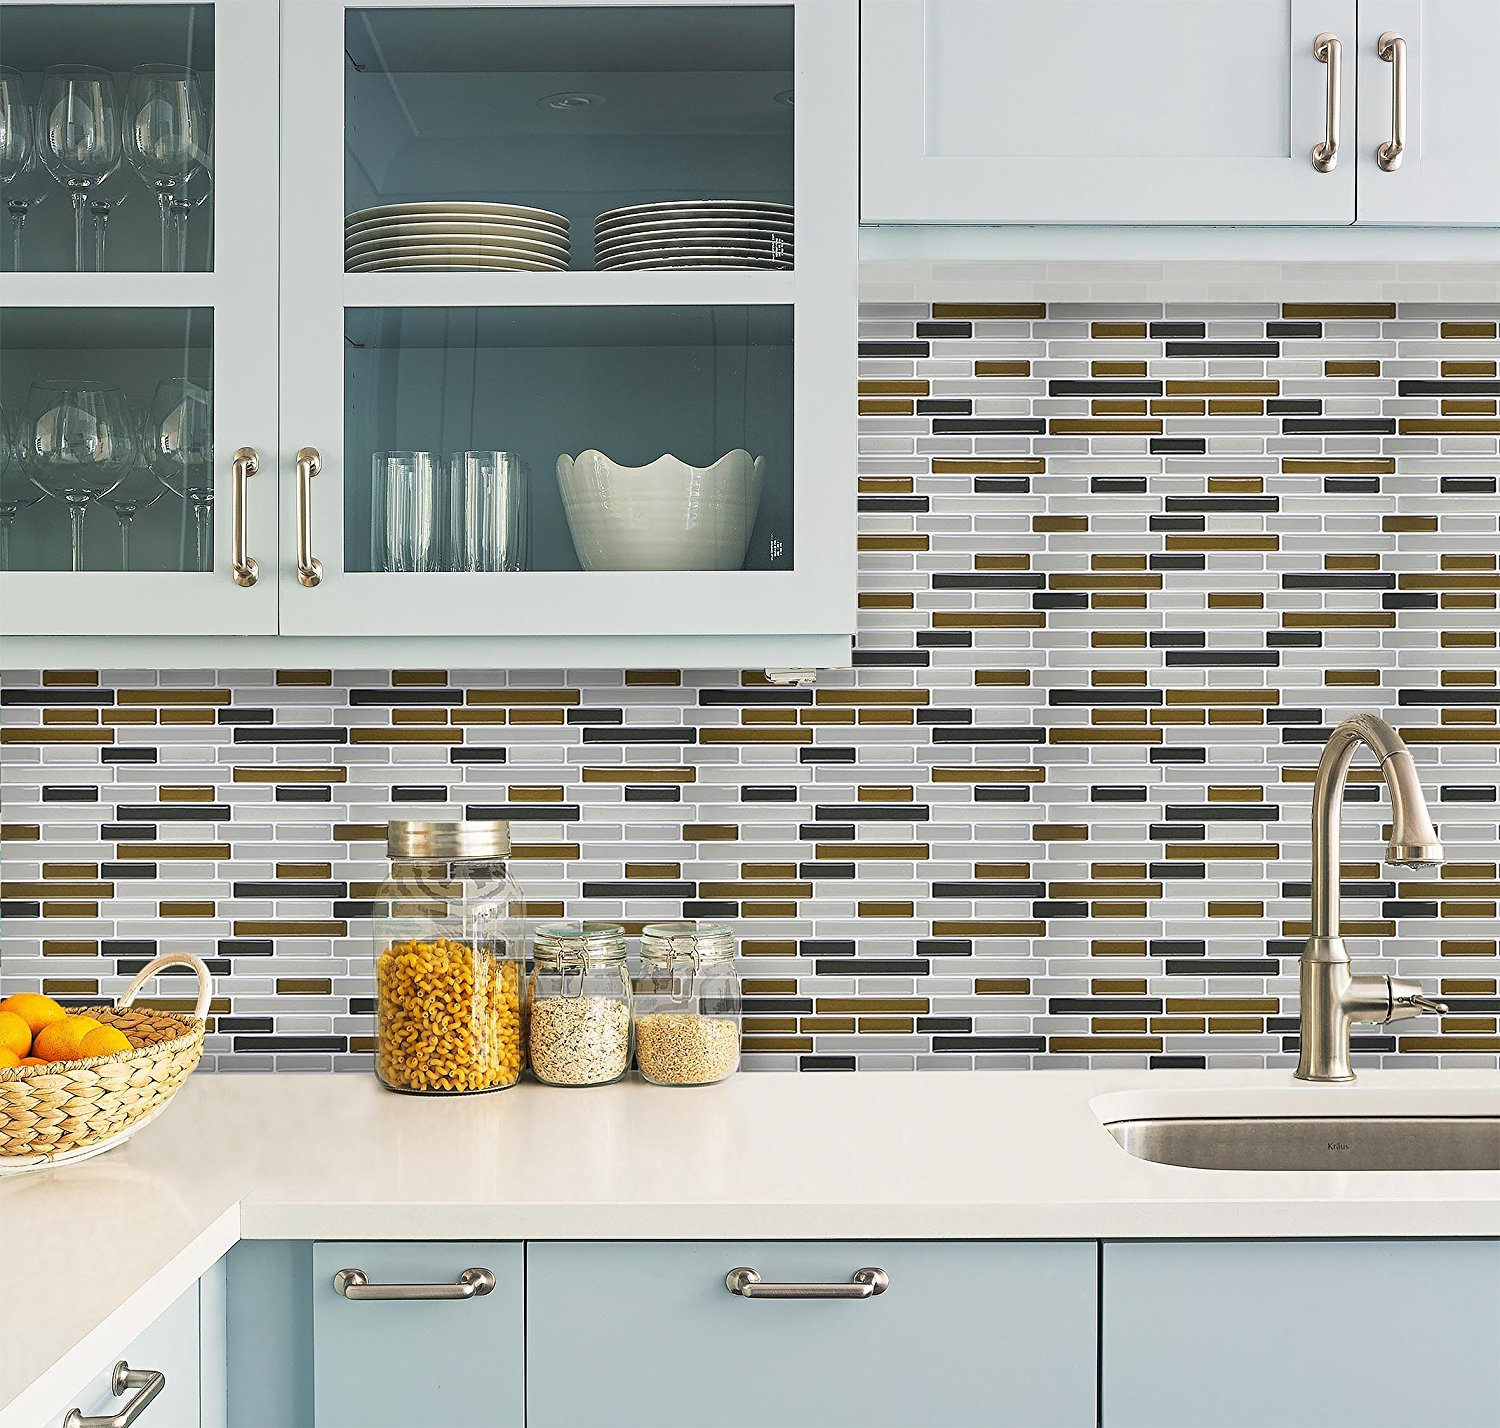 Cheap Stick On Wall Tiles Uk Find Stick On Wall Tiles Uk Deals On